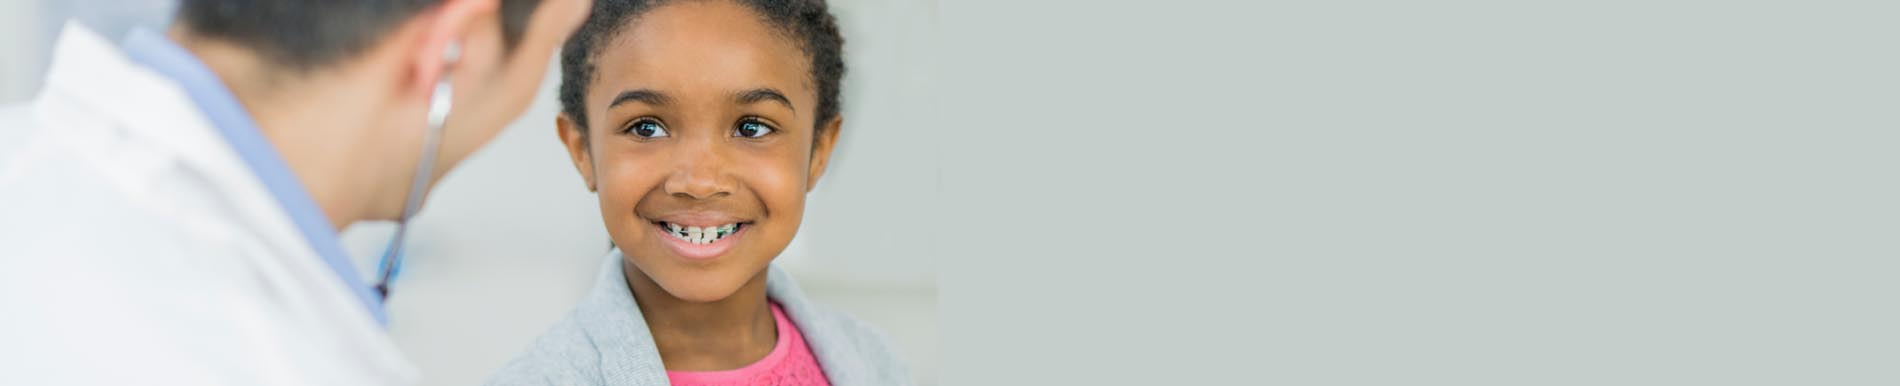 https://www.healthychildren.org/SiteCollectionImage-Homepage-Banners/back_checkup.jpg